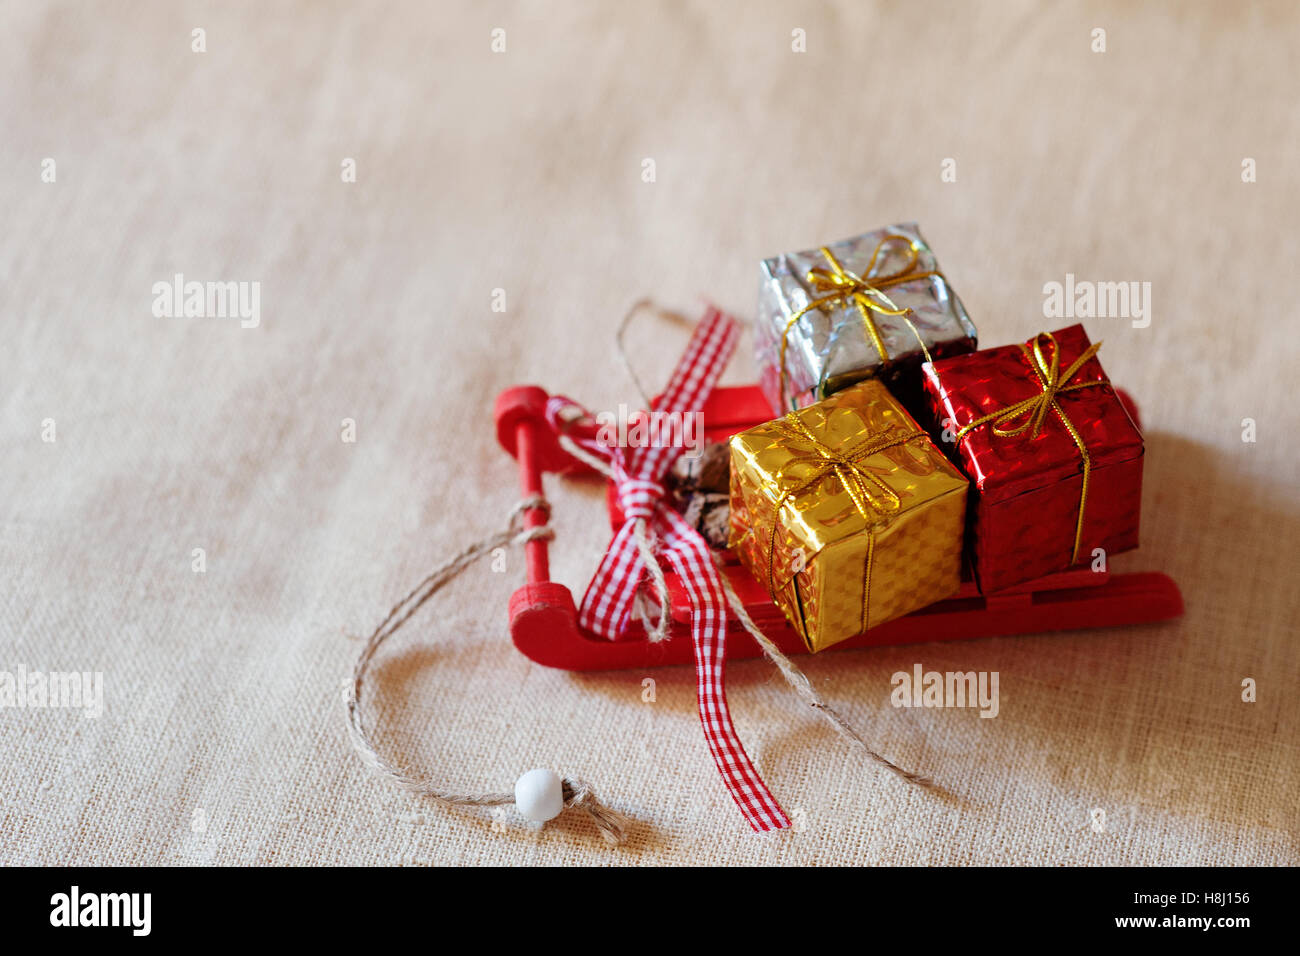 Christmas gift boxes on a red sleigh - tree decoration - Stock Image